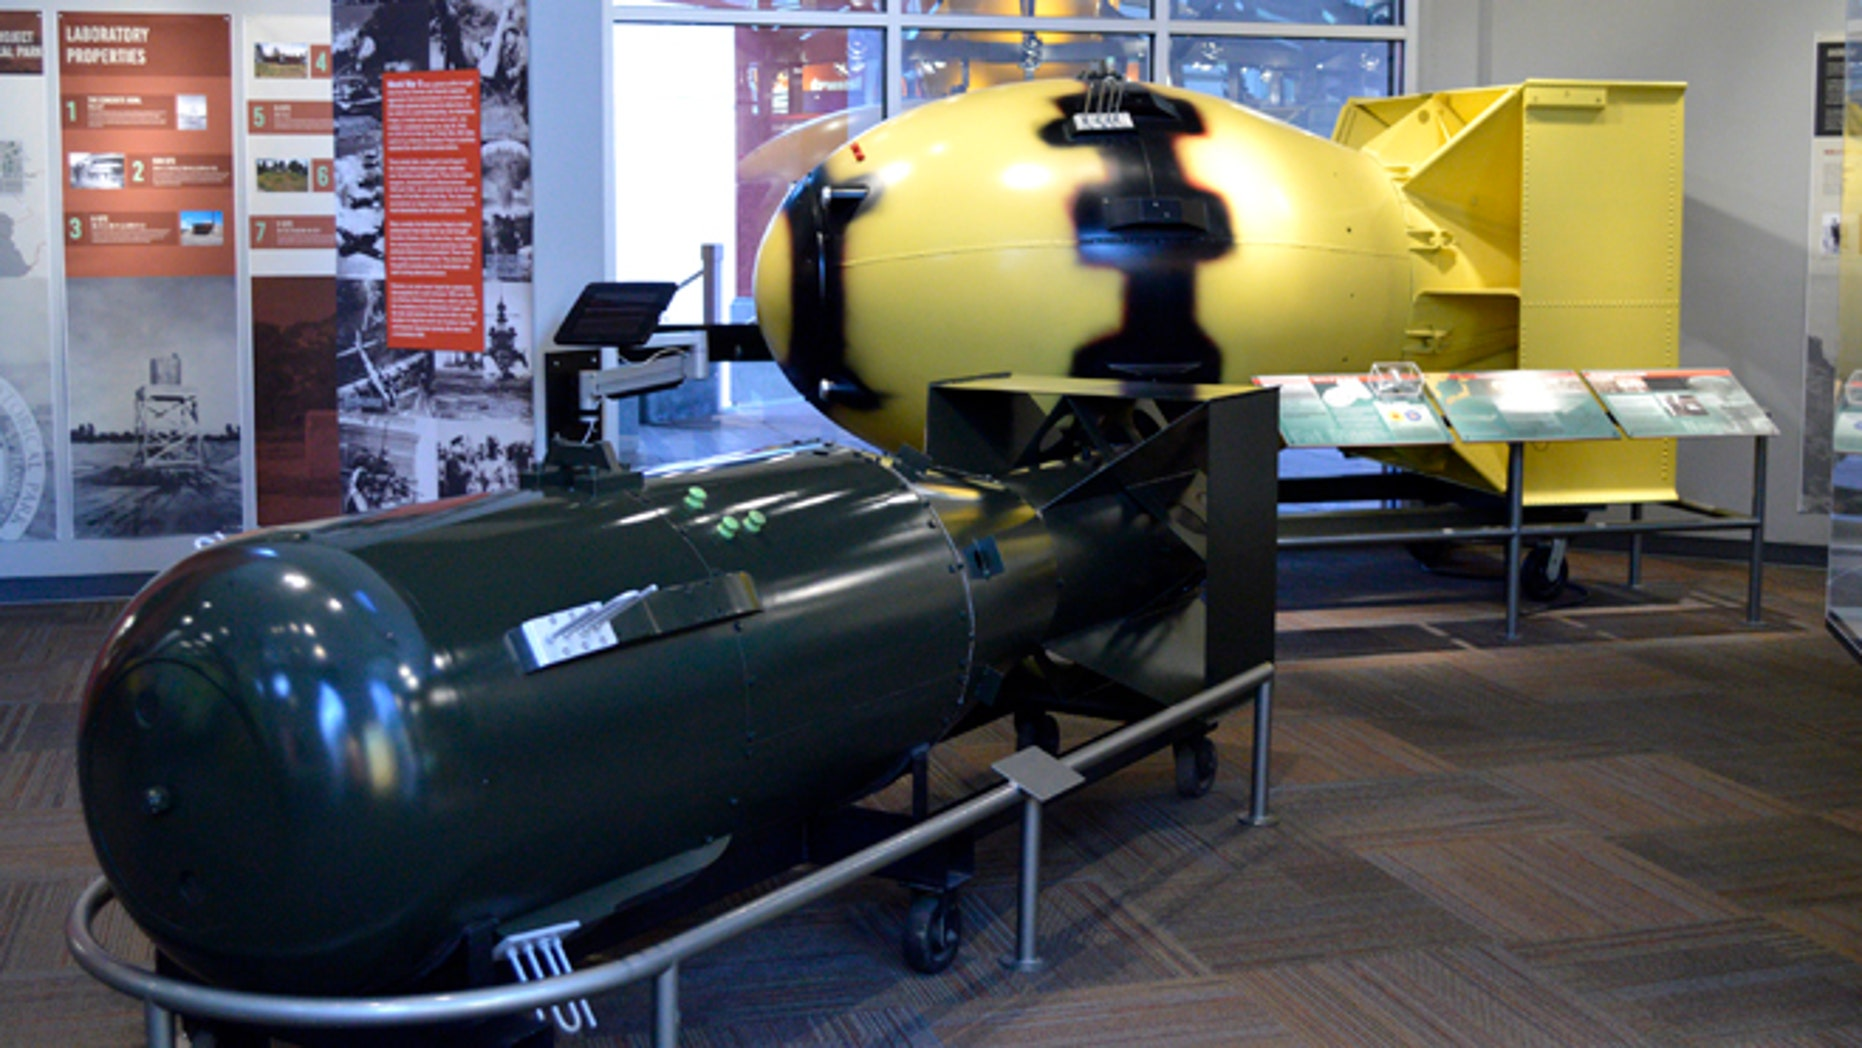 """This July 13, 2015 photo shows replicas of atomic bombs """"Little Boy,"""" left, and """"Fatman,"""" both dropped on Japan during World War II, sit at the Bradbury Science Museum in Los Alamos, N.M. Thursday, July 16, marks the 70th anniversary of the Trinity Test in southern New Mexico and comes amid renewed interest in the Manhattan Project thanks to new books, video oral histories and a WGN America television drama series. (AP Photo/Russell Contreras)"""